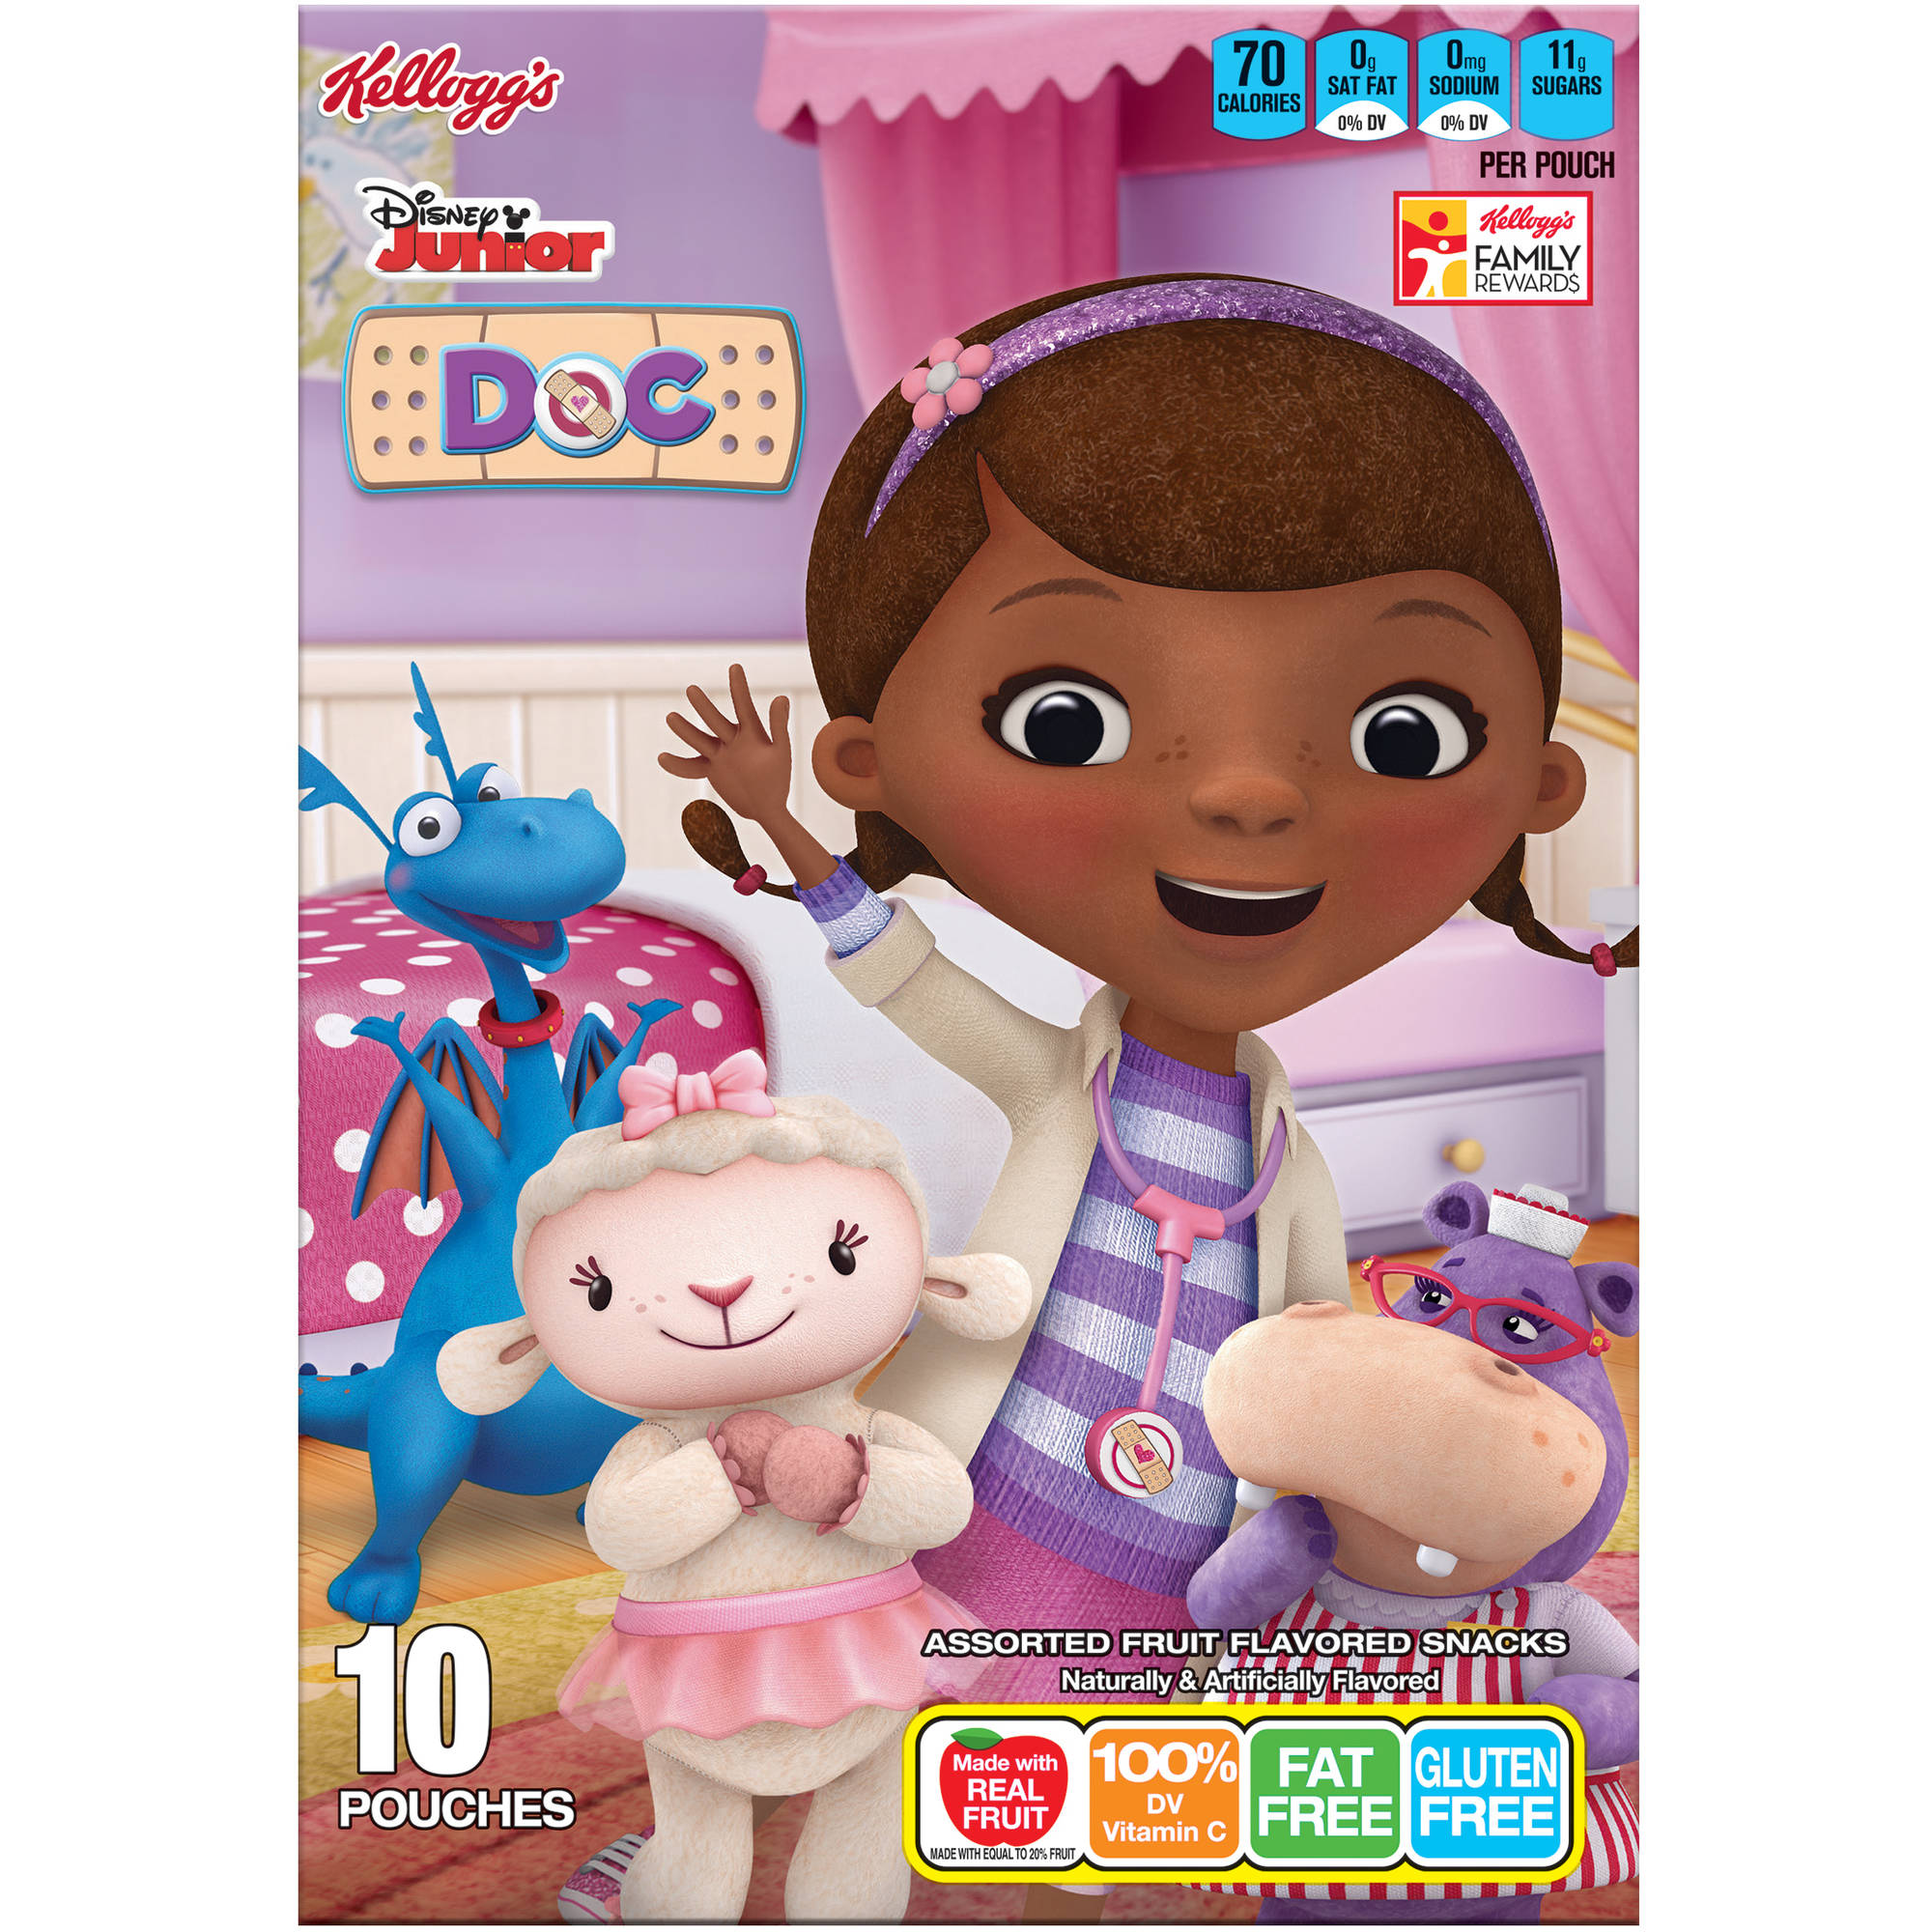 Kellogg's Disney Doc McStuffins Fruit Flavored Snacks, 10 count, 8 oz